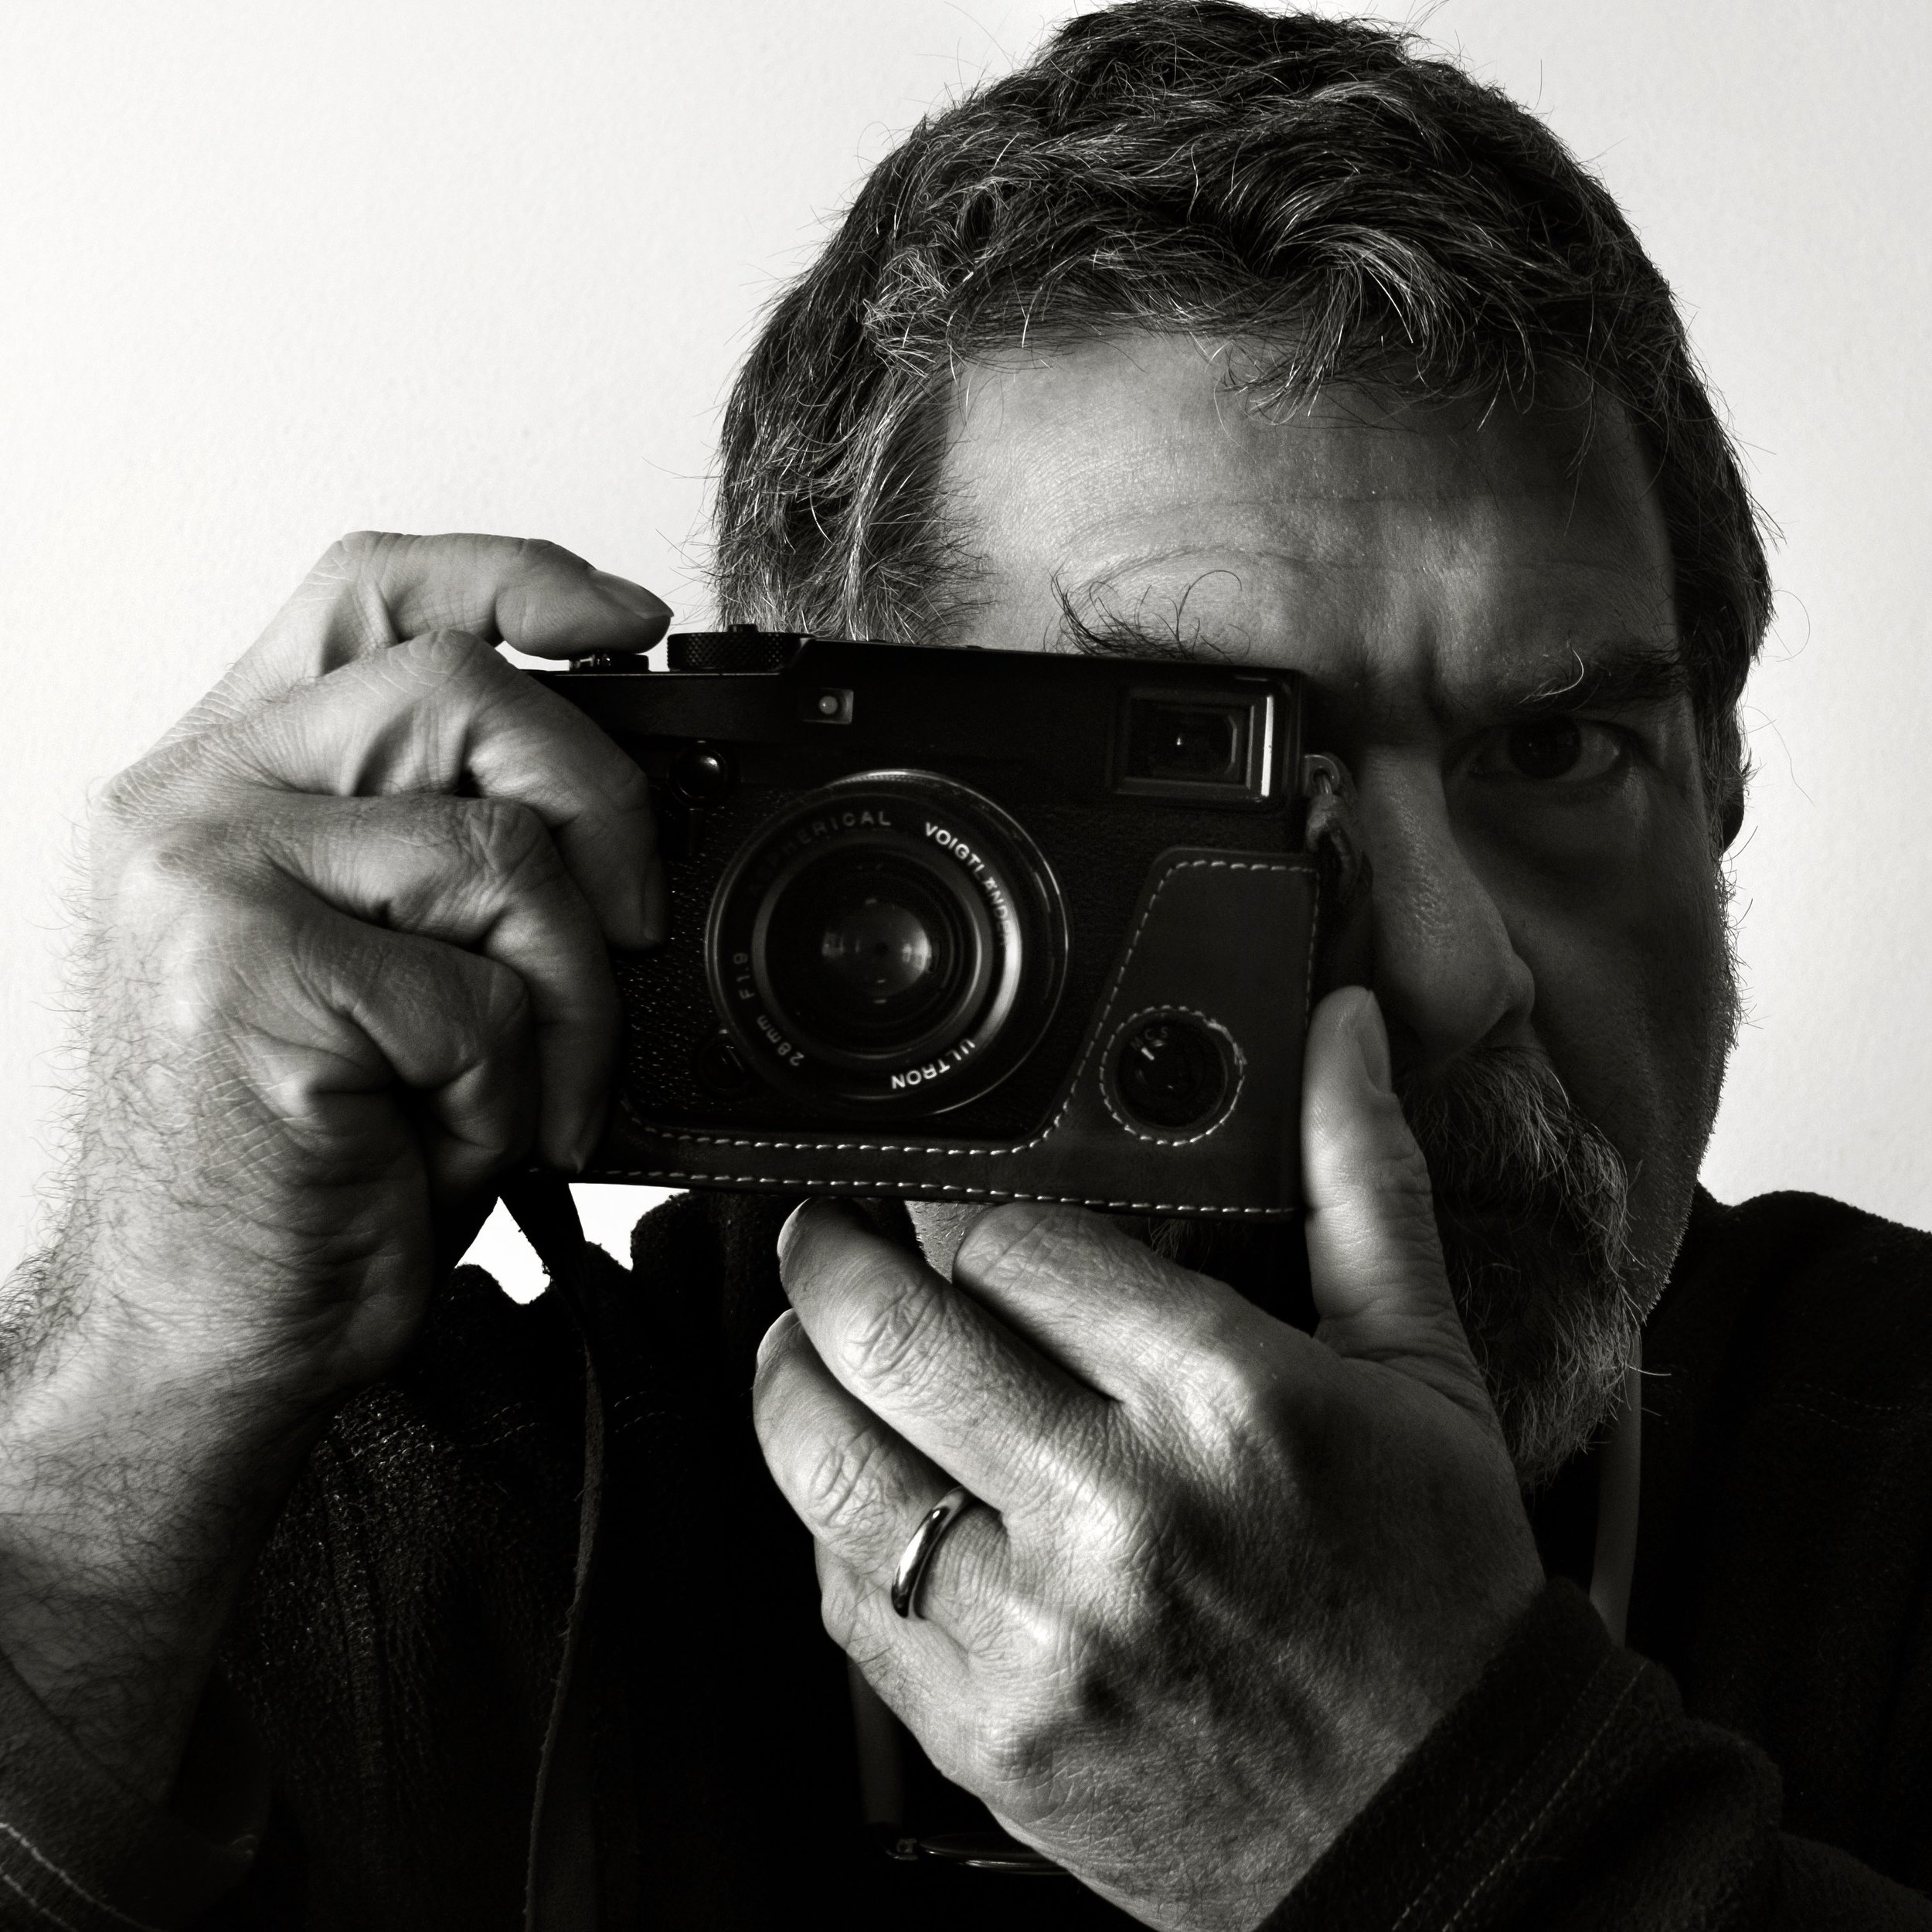 """Giacomo D'Aguanno - Guest Expert  Born in Palermo in 1961. Since 1987 he has worked as a professional photographer, dealing with advertising, industrial and reportage photography. At the same time he deals with social issues related to the city of Palermo. In 2006 Giacomo's photo essay """"Palermomare""""was exhibited at """"Visa pour l'image"""" 18th edition in Perpignan (France)"""